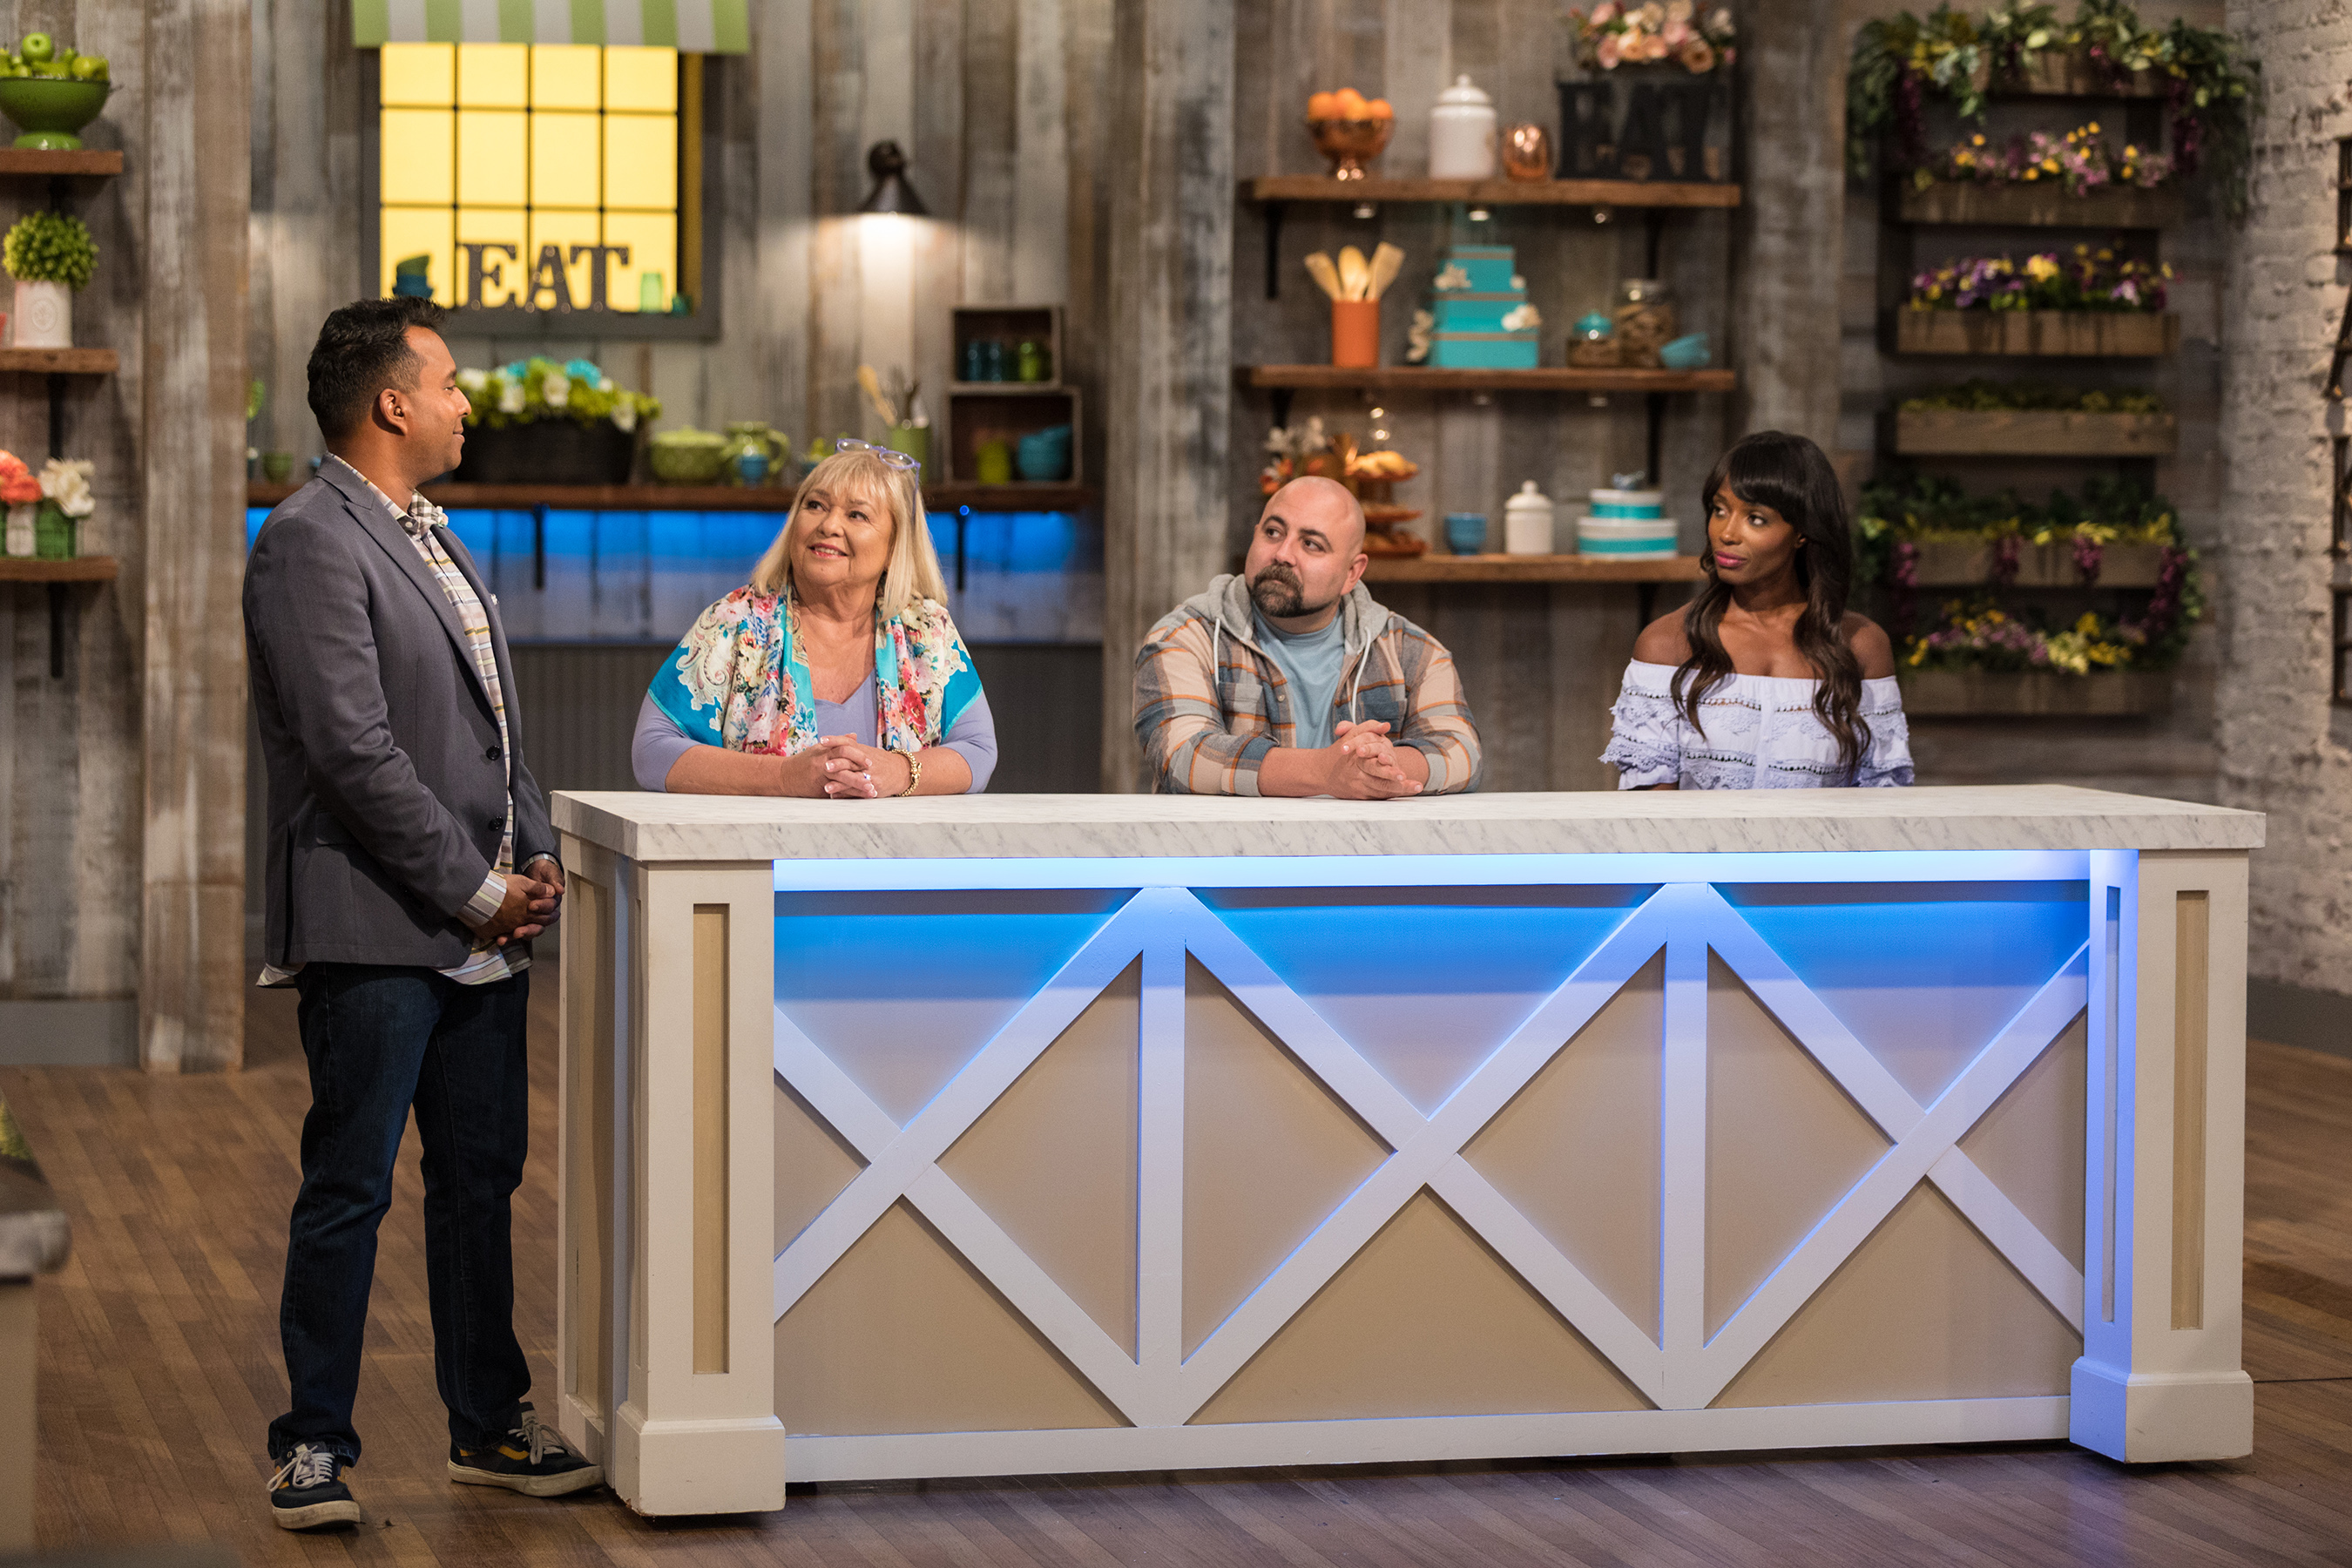 Ali Khan meets with the judges, Nancy Fuller, Duff Goldman and Lorraine Pascale, on Food Network's Spring Baking Championship